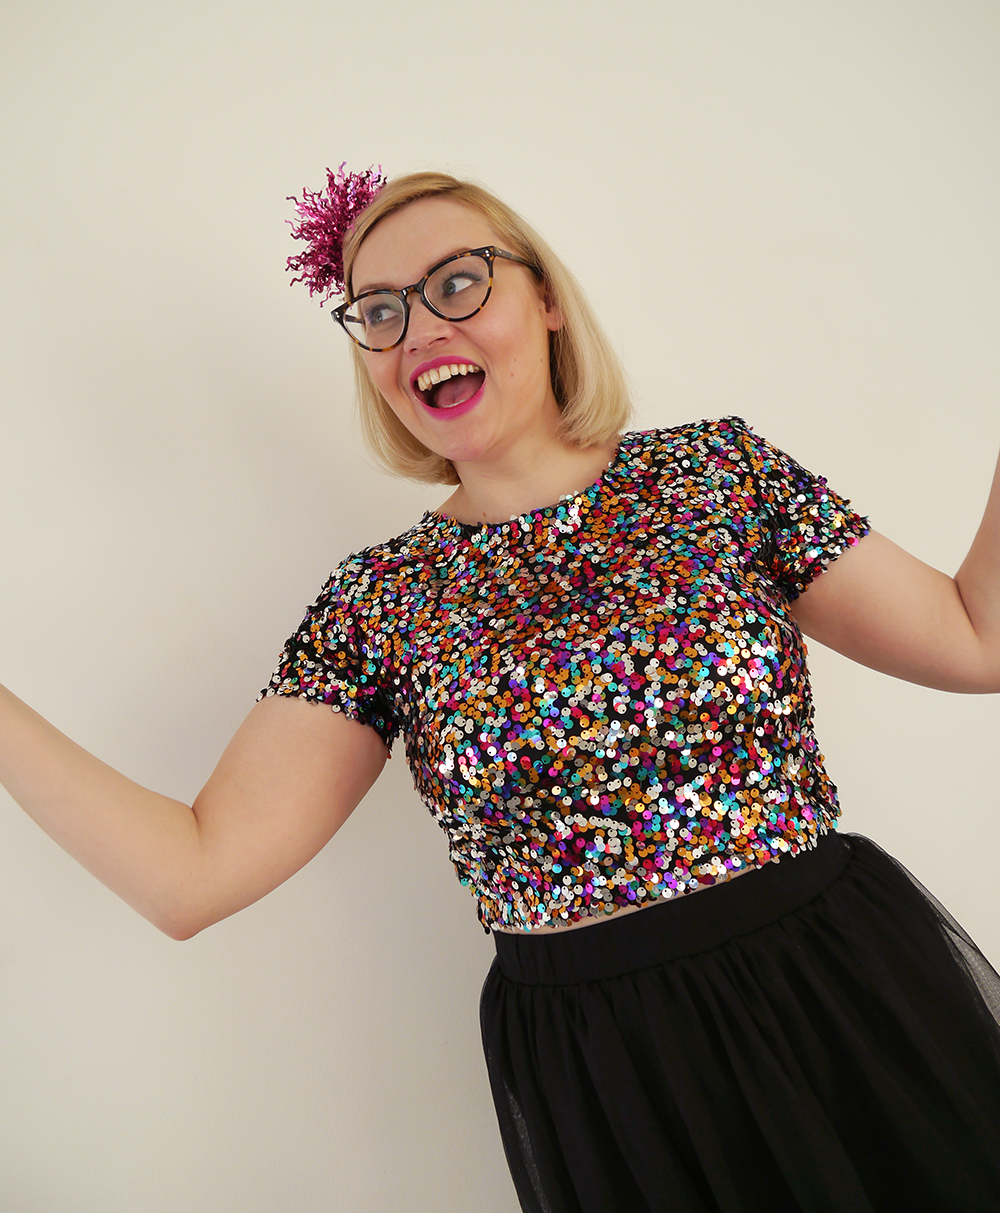 new year party look, christmas sequins, chrsitmas present, scottish style blogger, fun fashion, sartorial style